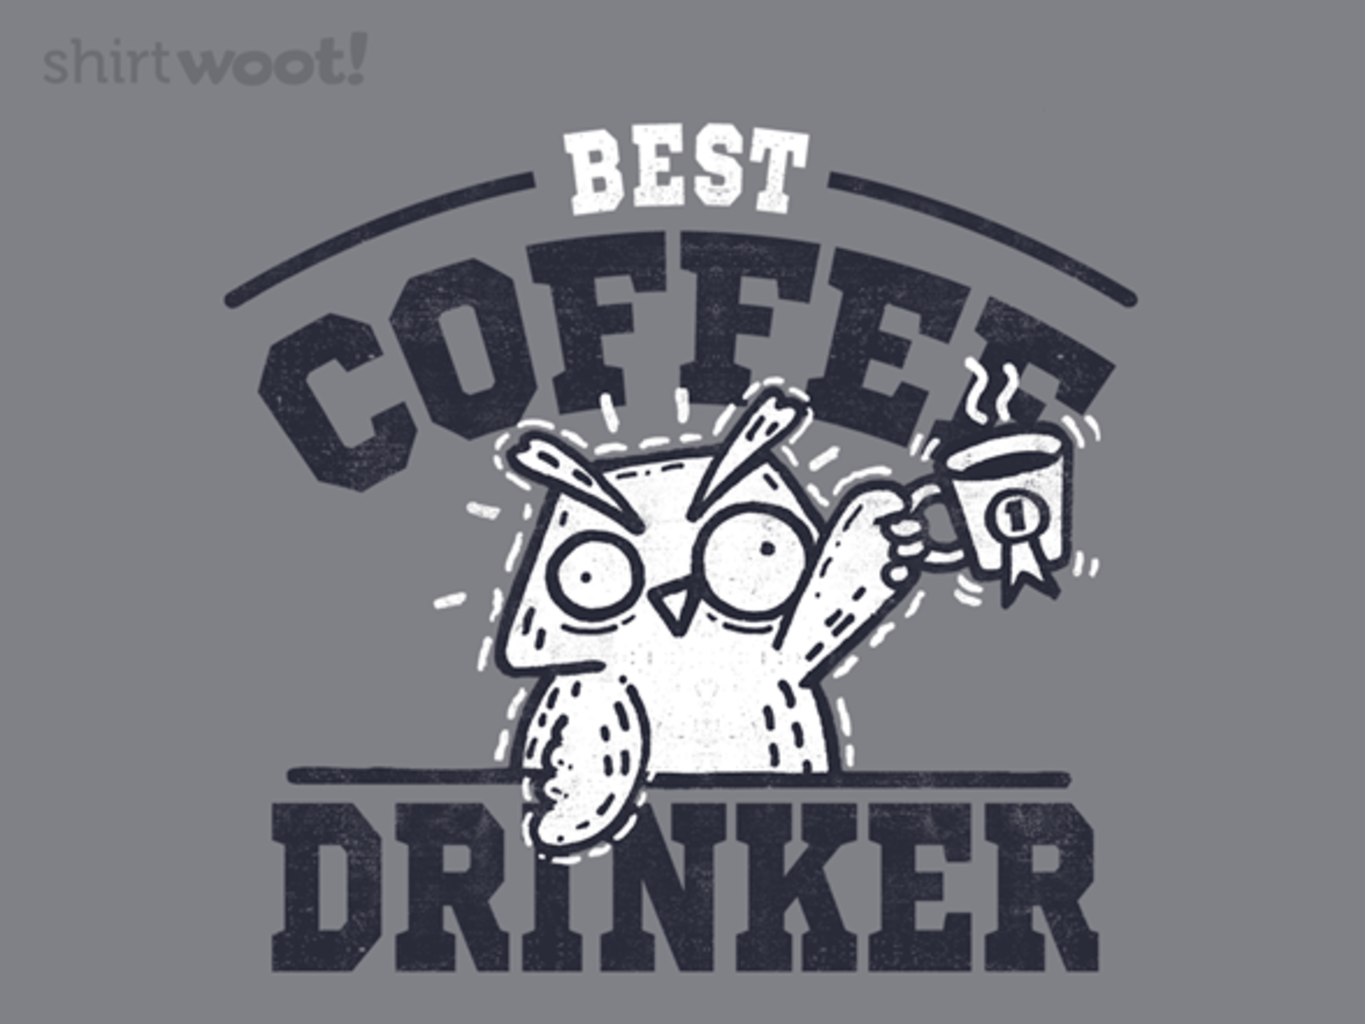 Woot!: Best Coffee Drinker